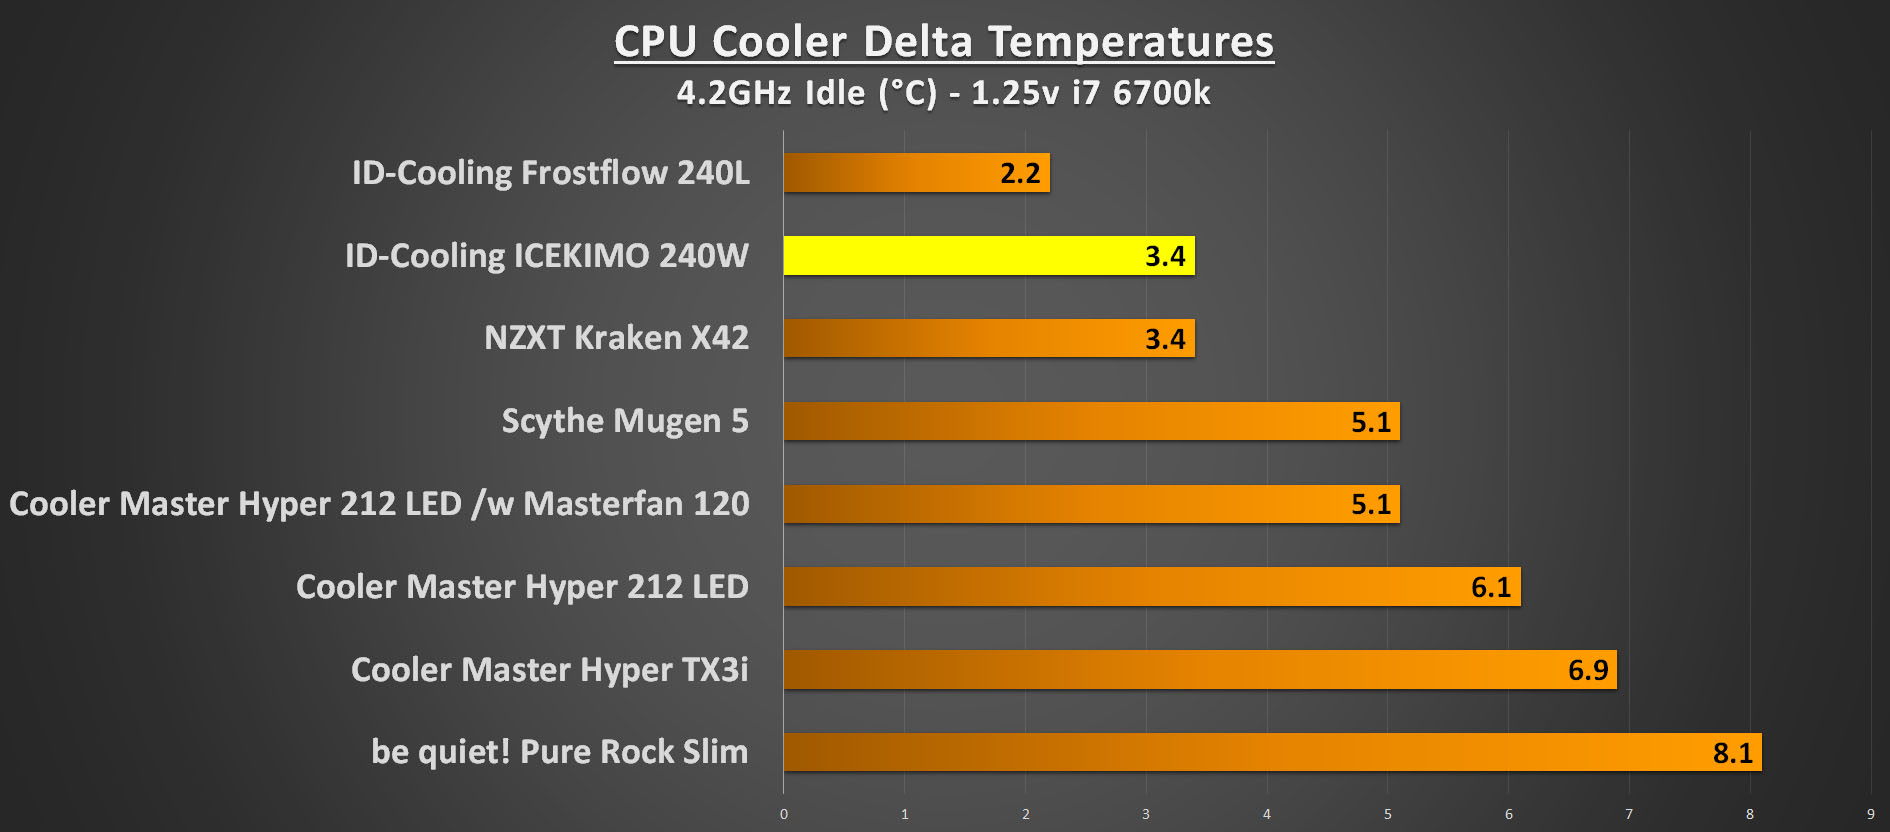 ID-Cooling ICEKIMO 240W Performance 4.2GHz Idle